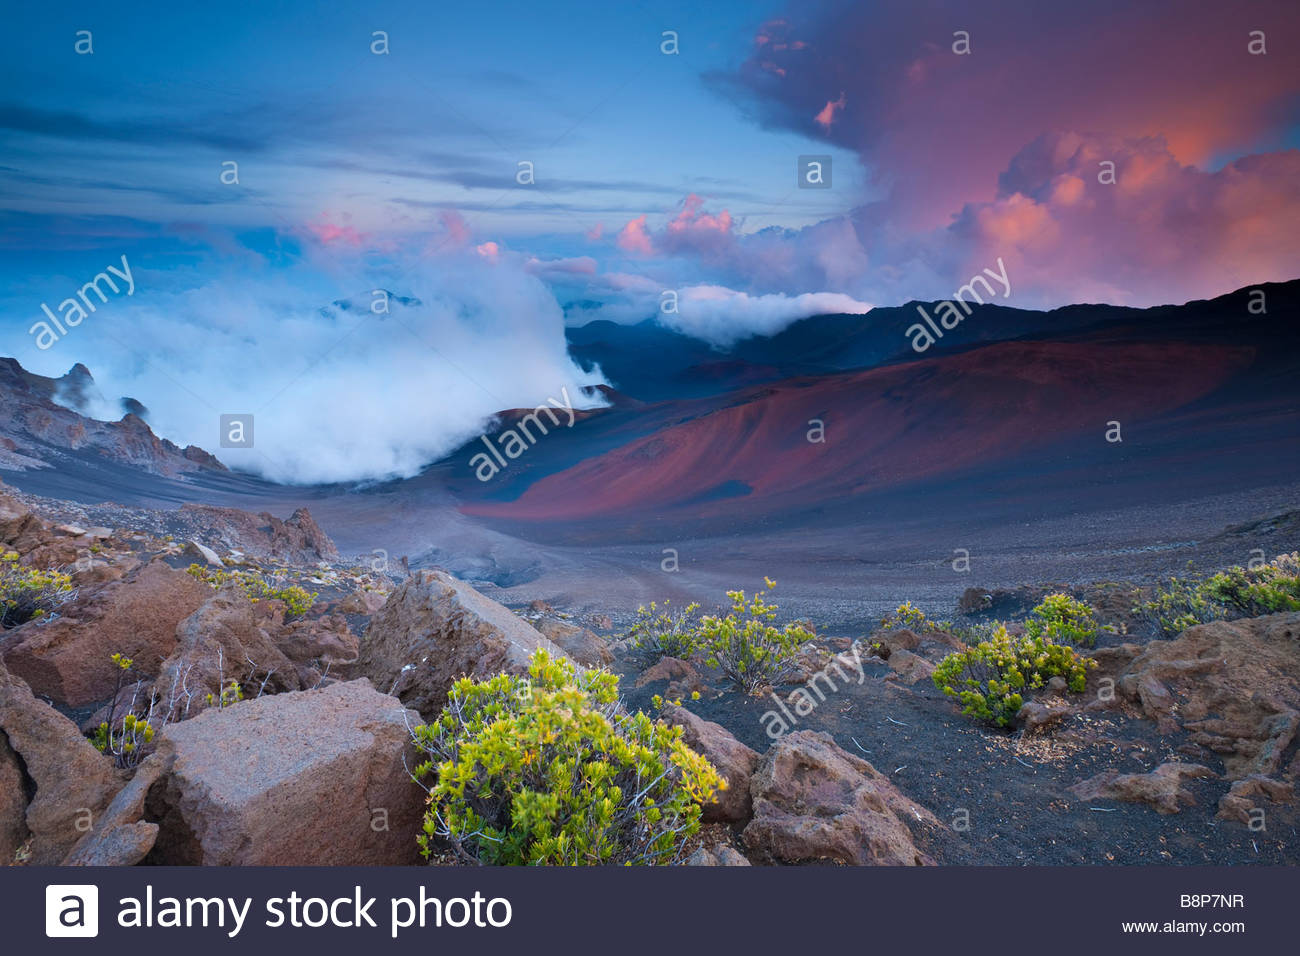 Storm clouds climb up the crater in Haleakala National Park on the Hawaiian island of Maui at sunset. - Stock Image